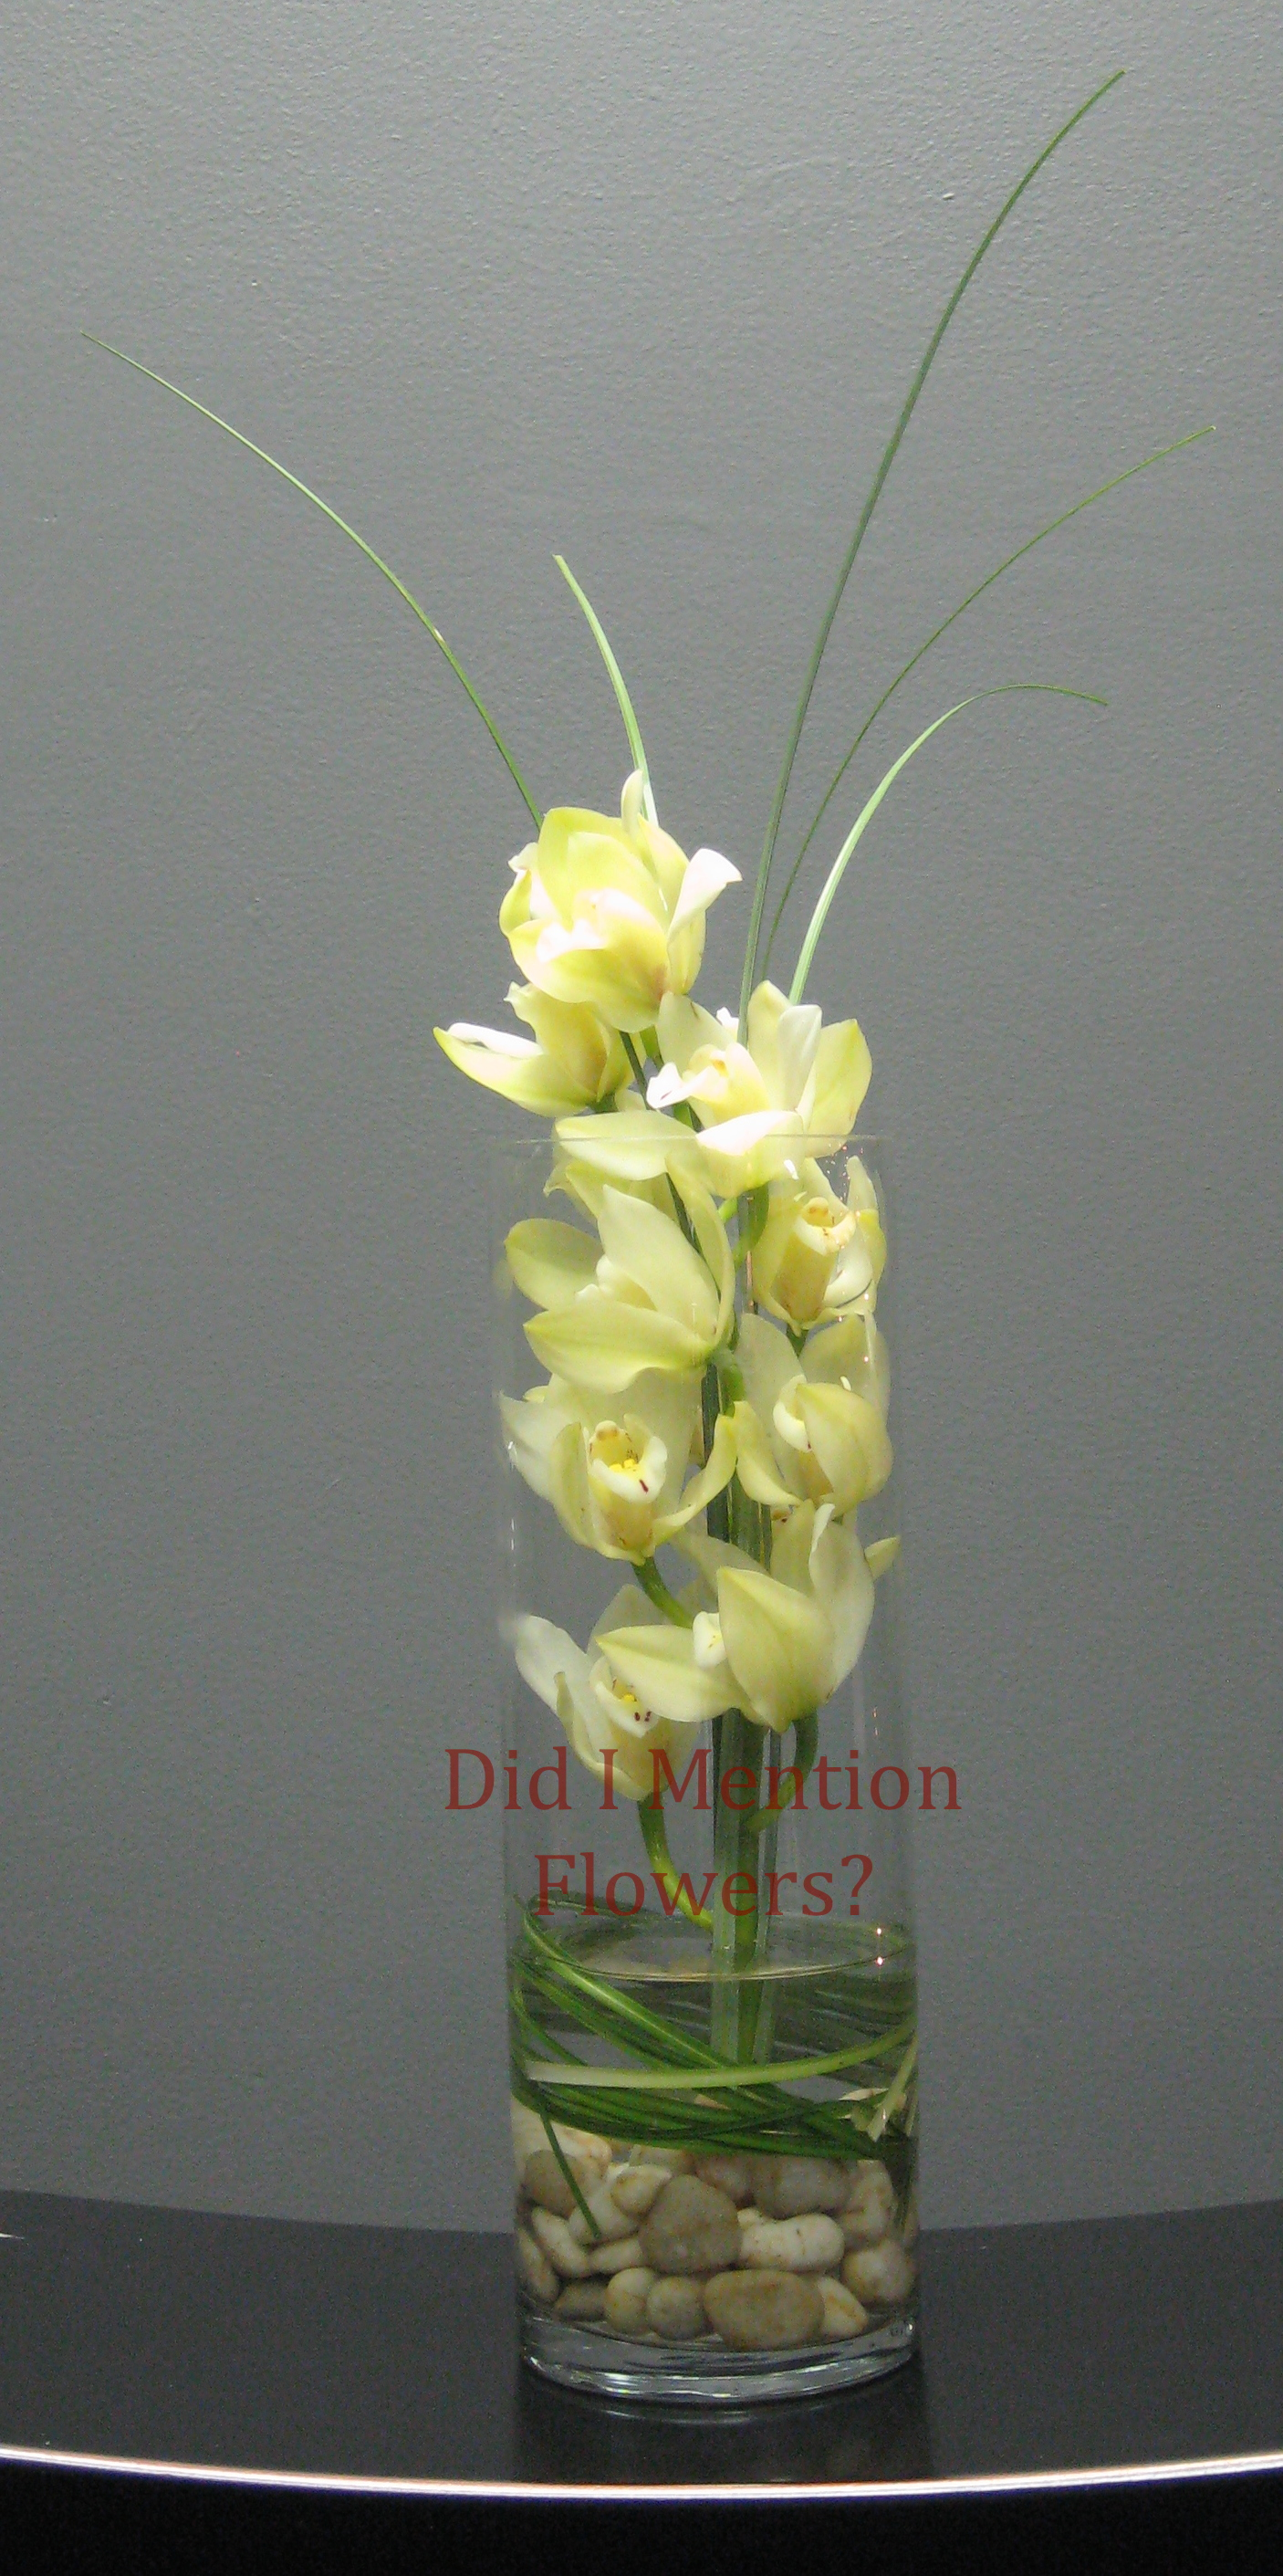 12 - Mini Cymbidium Orchids in a Vase